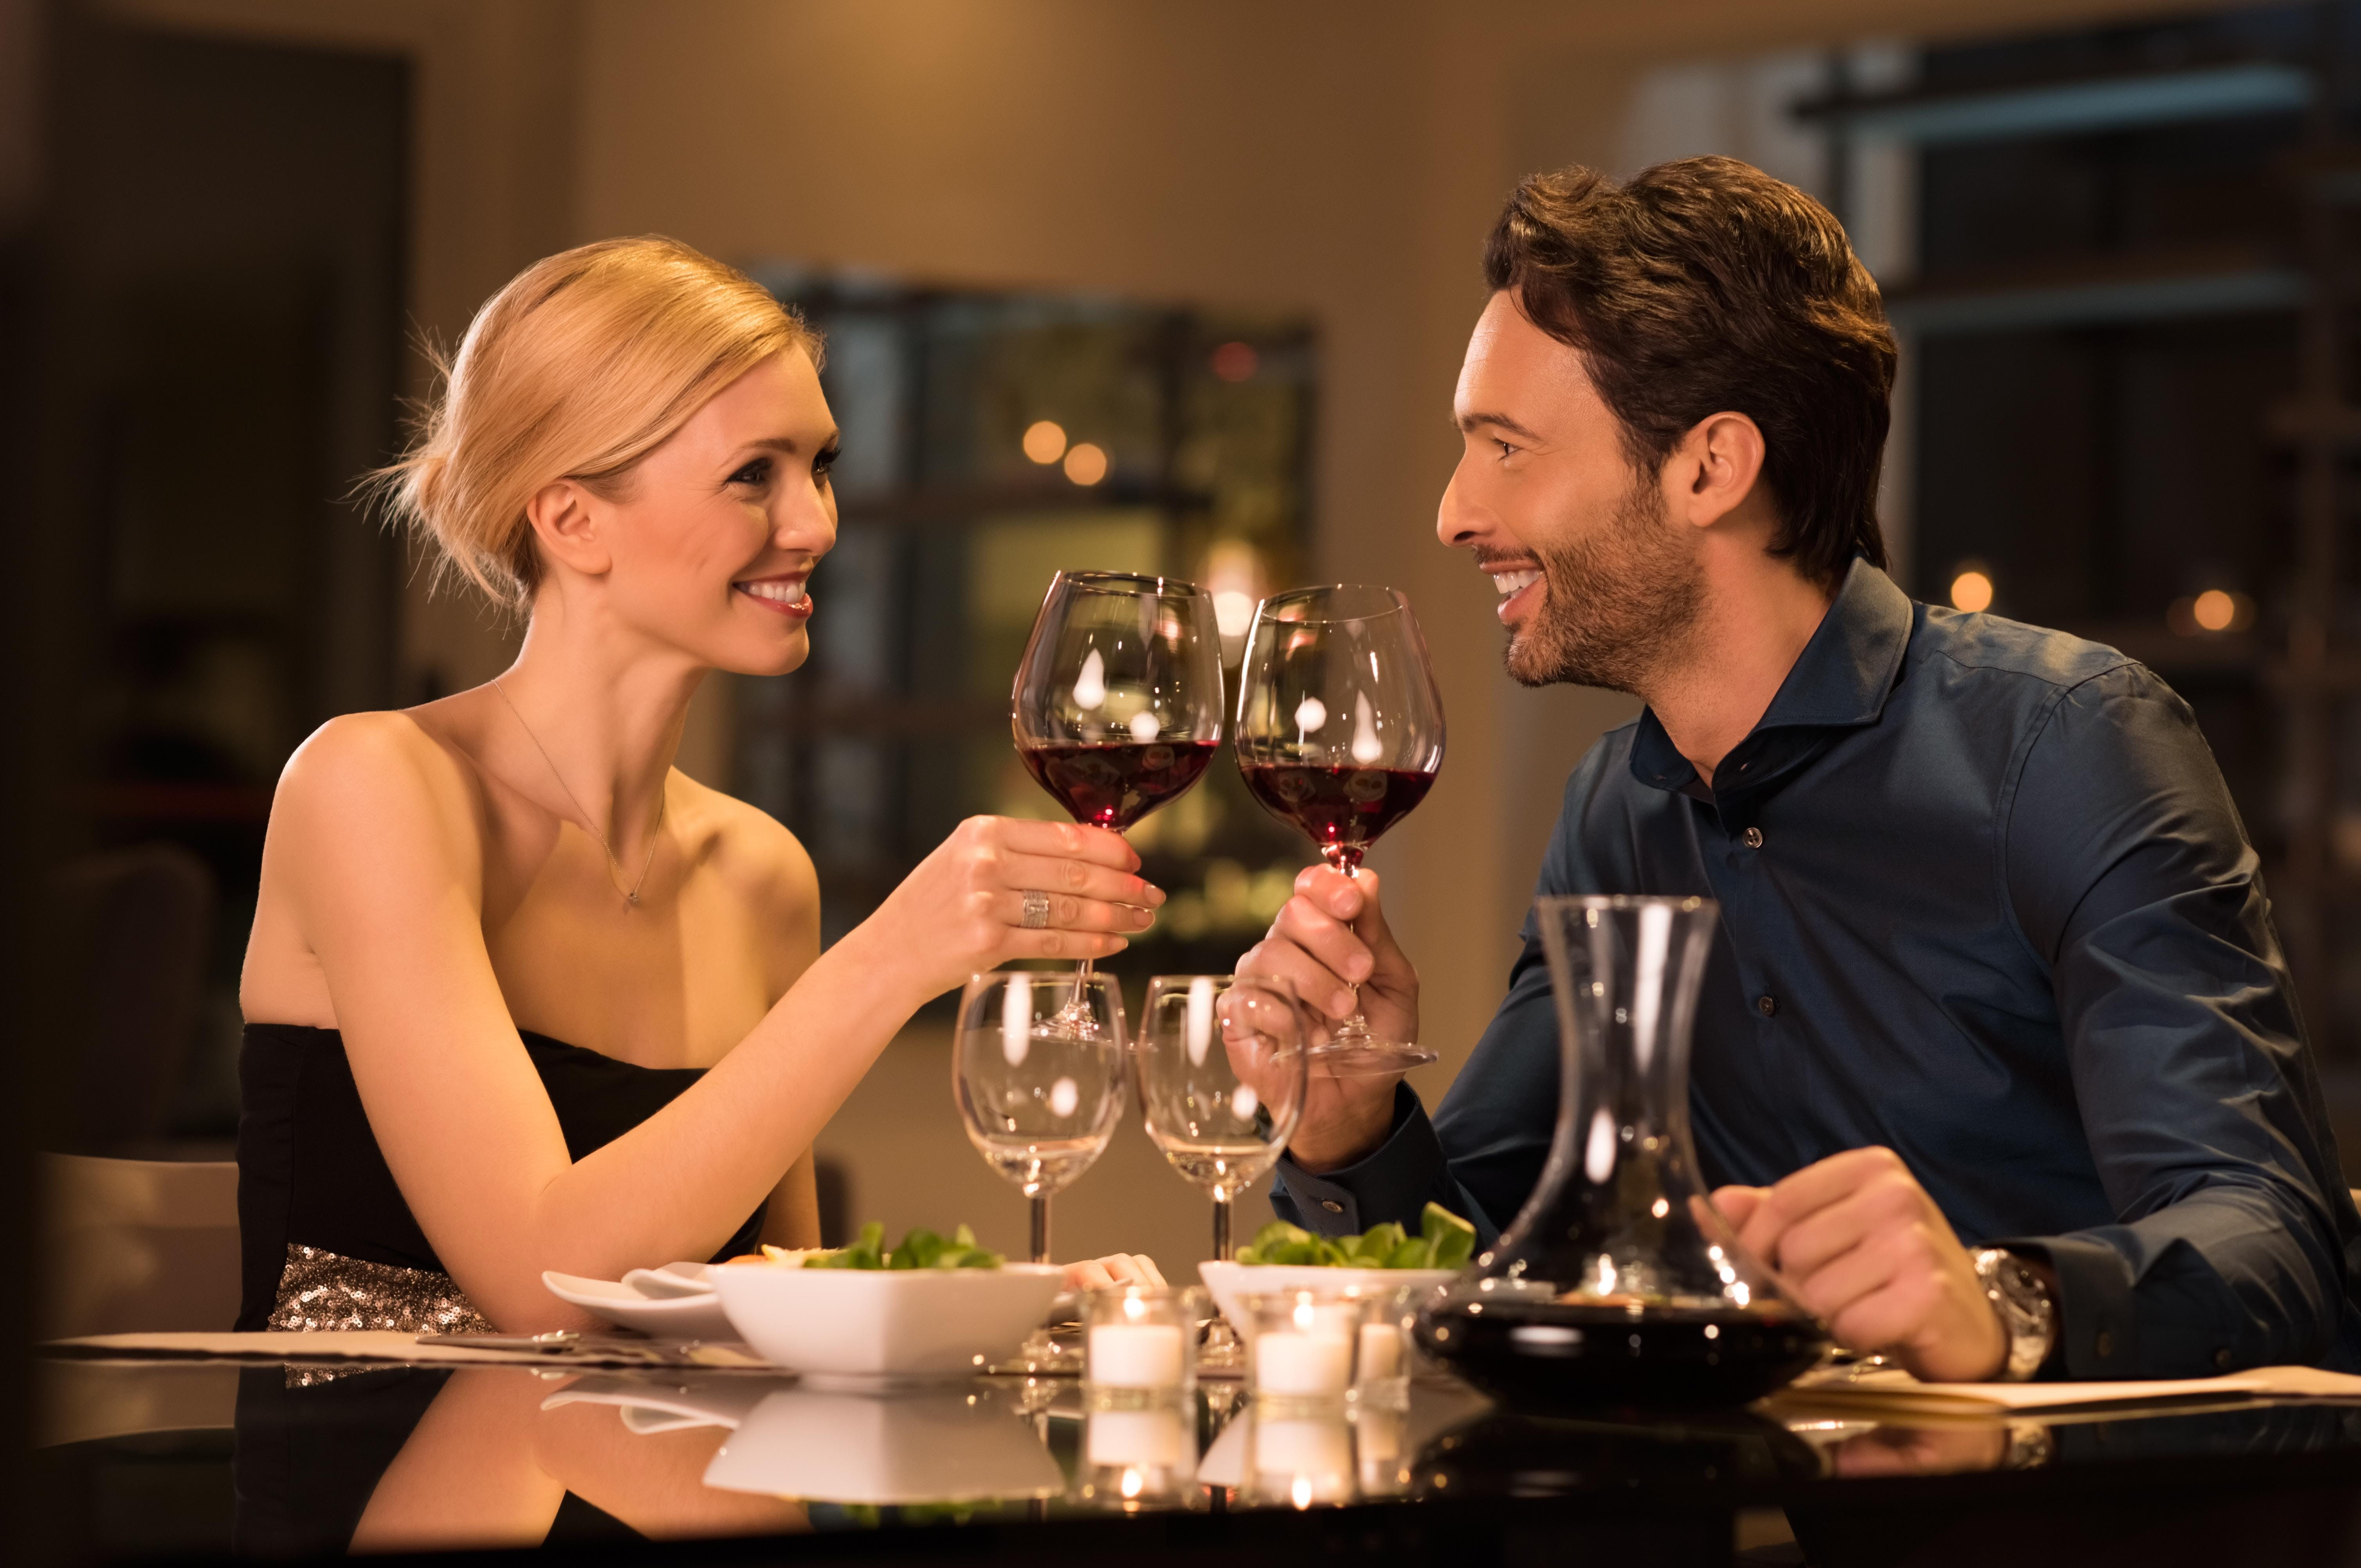 Couples dating chicago